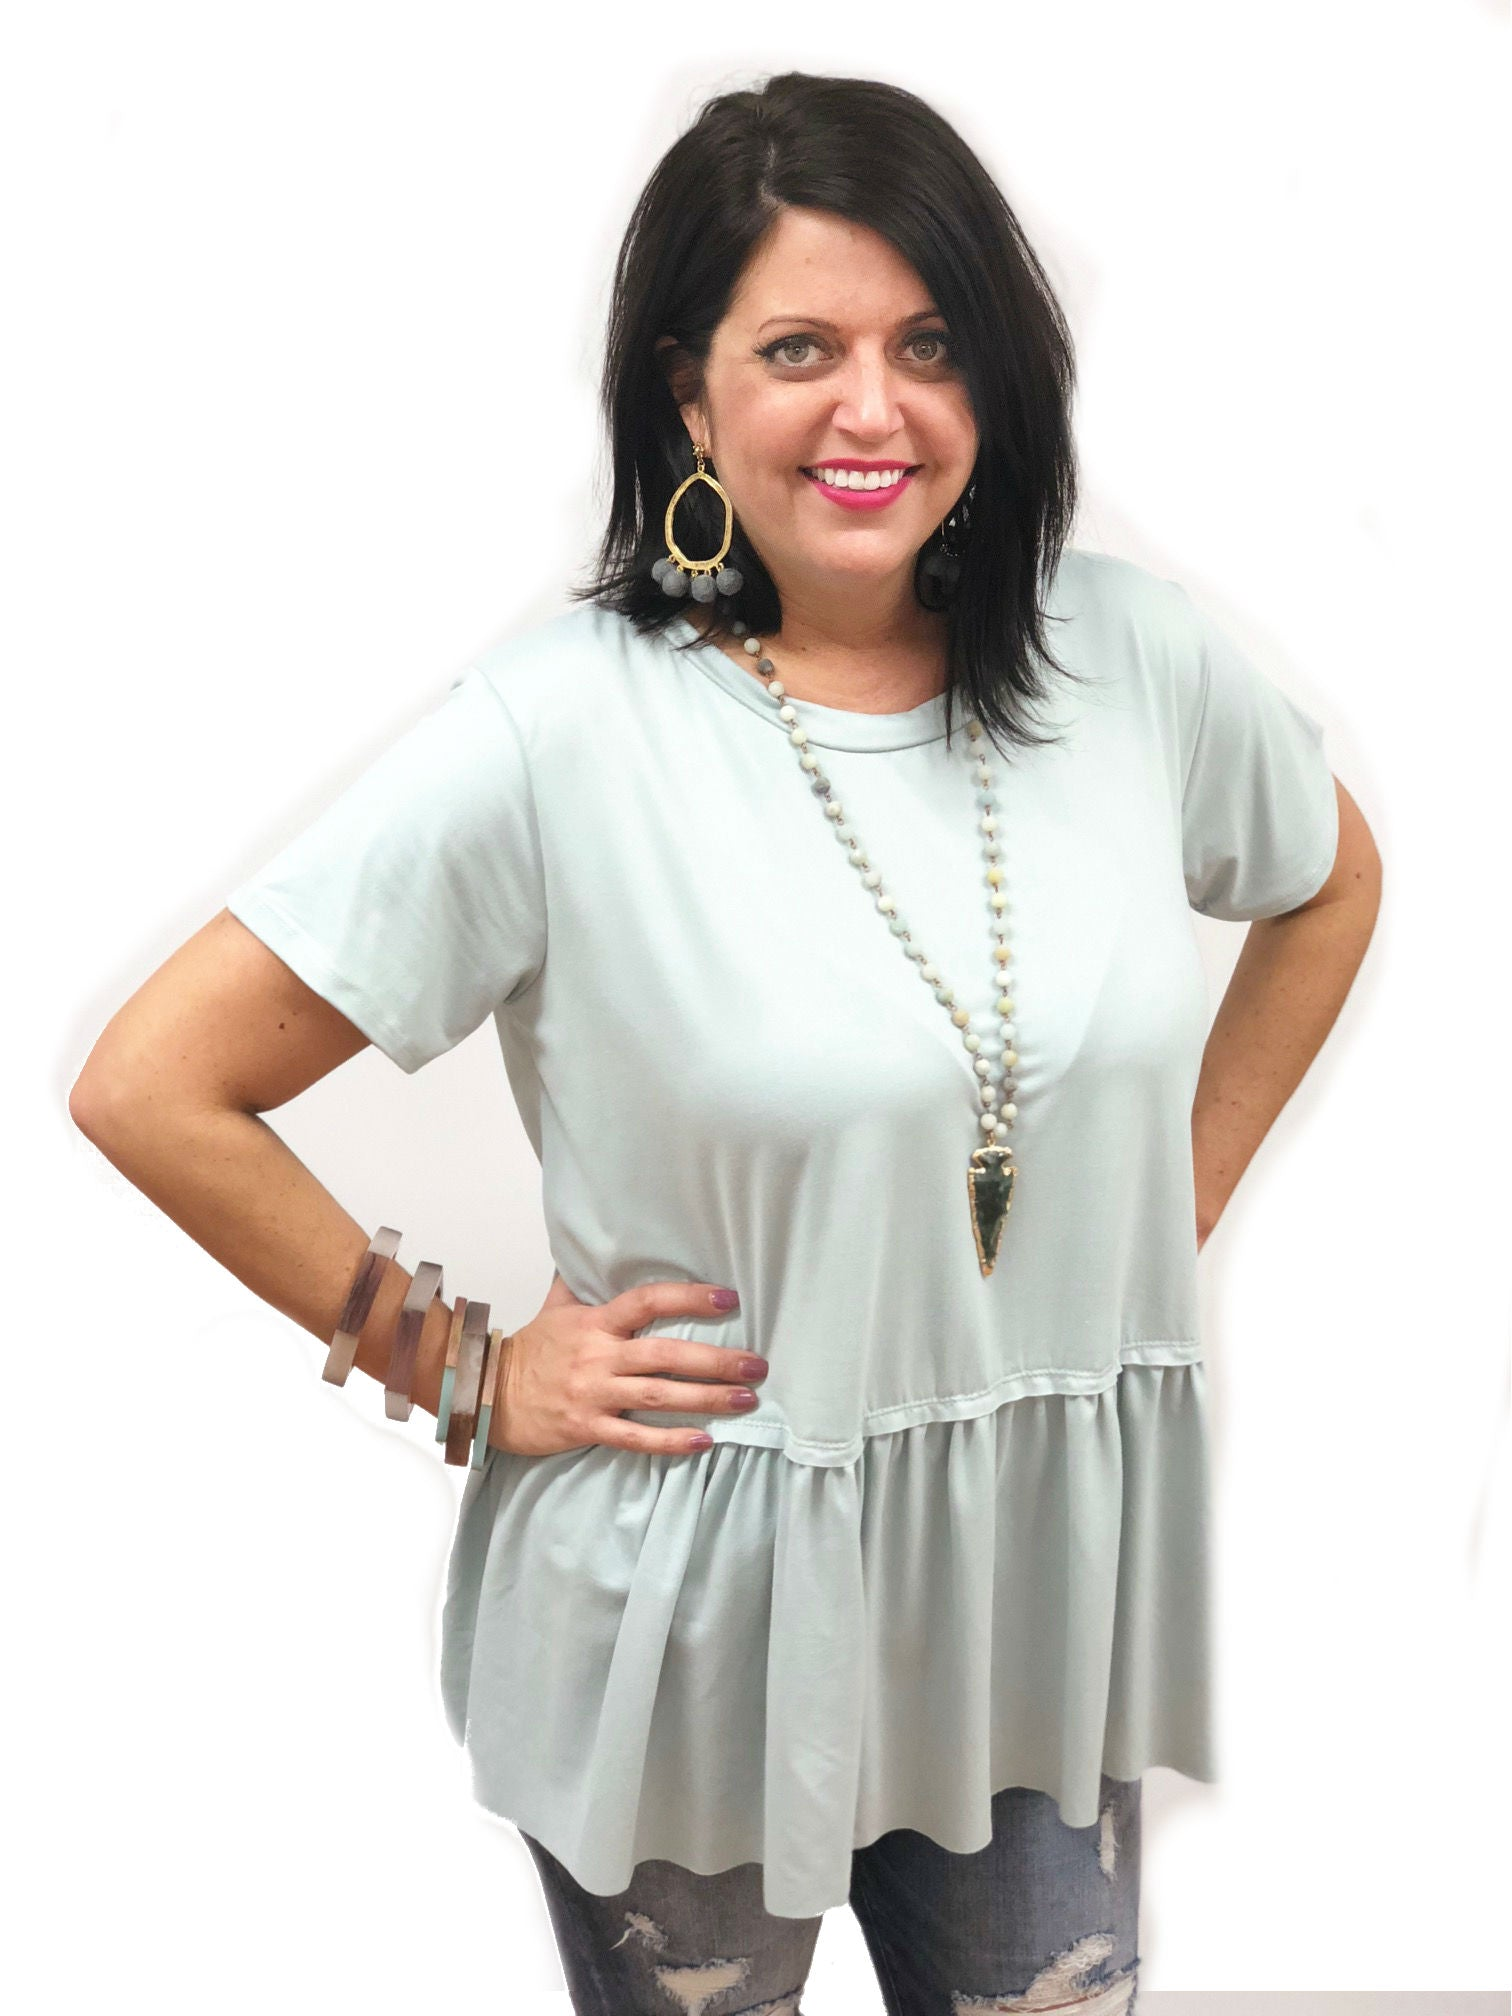 plus size full figure casual comfortable top with peplum drop waist and short sleeves mustard and aqua spa blue